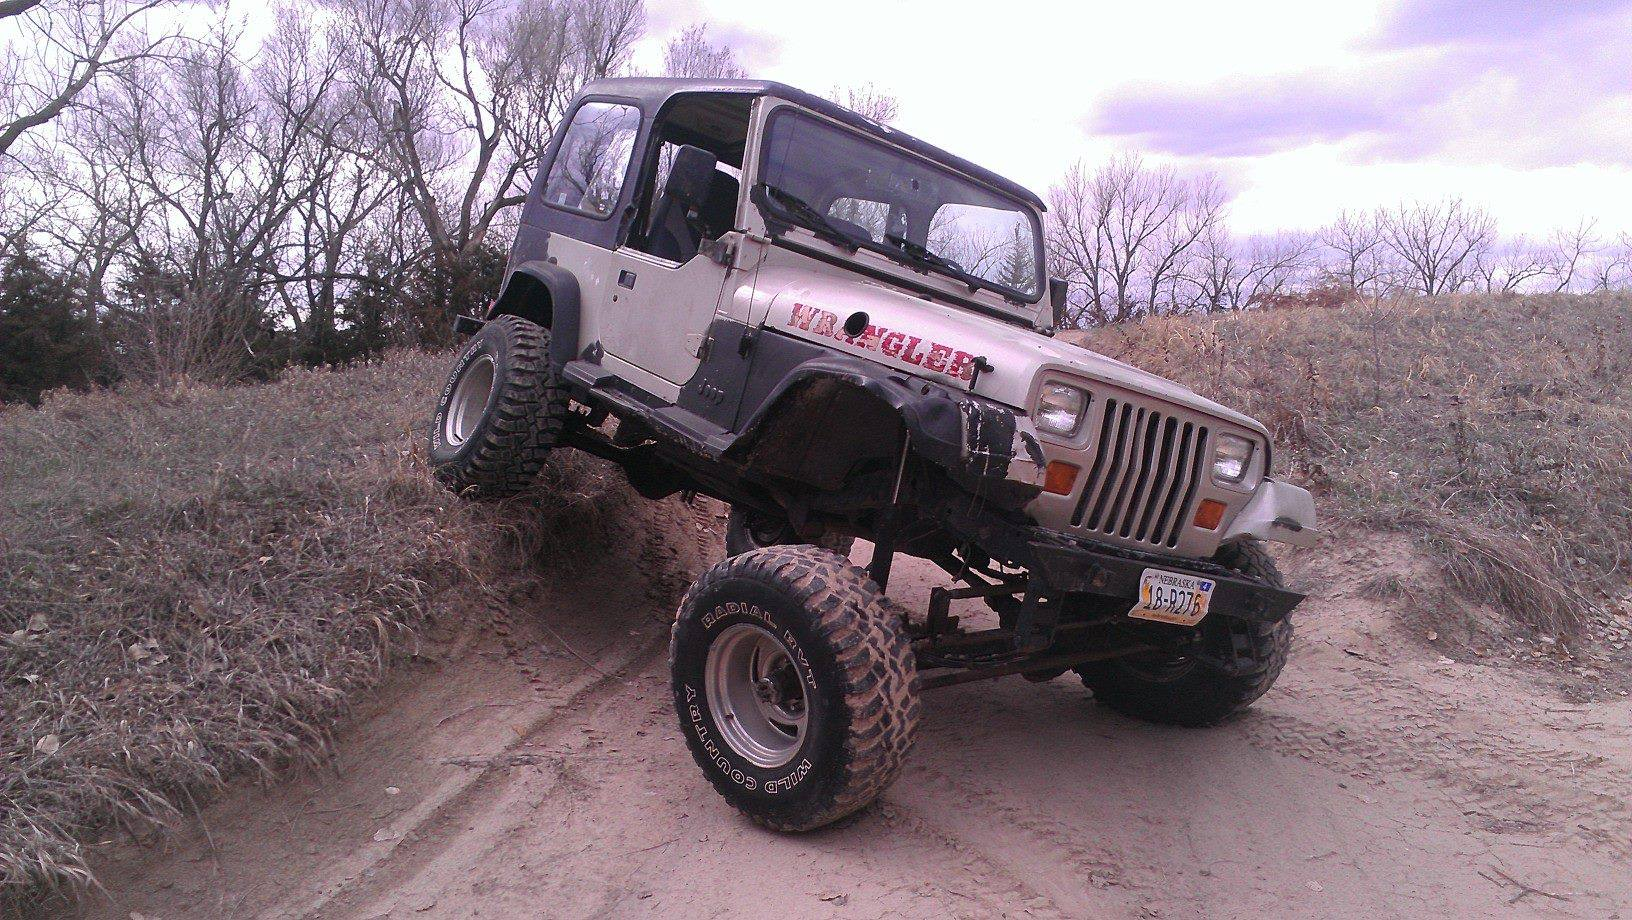 From Justin Cochrane: Flexin in the jeep, in Nebraska